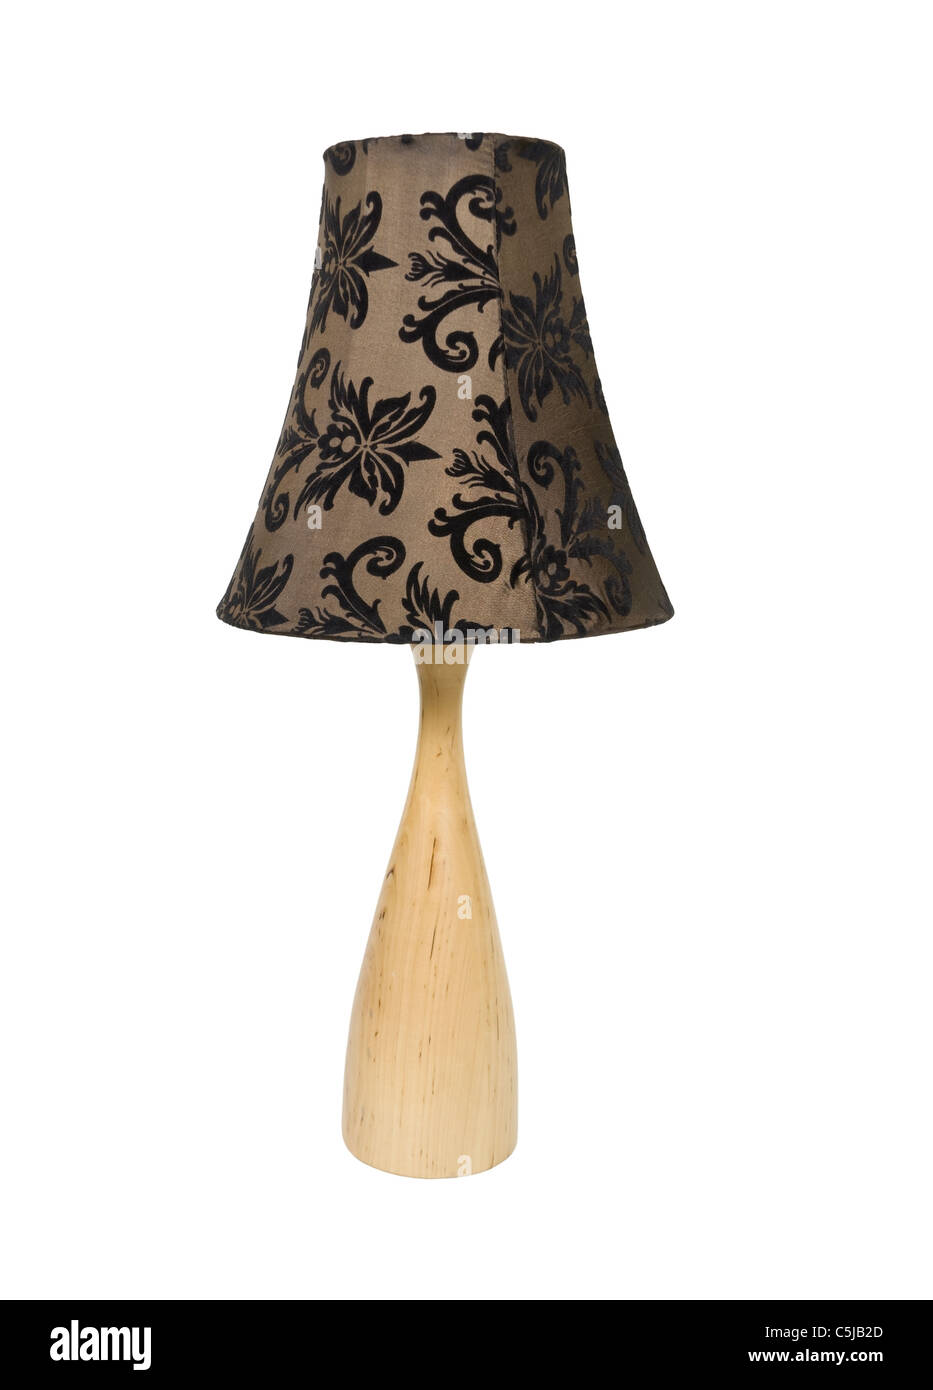 Leafy and swirled patterned lamp shade giving a plain appliance and updated look - path included - Stock Image